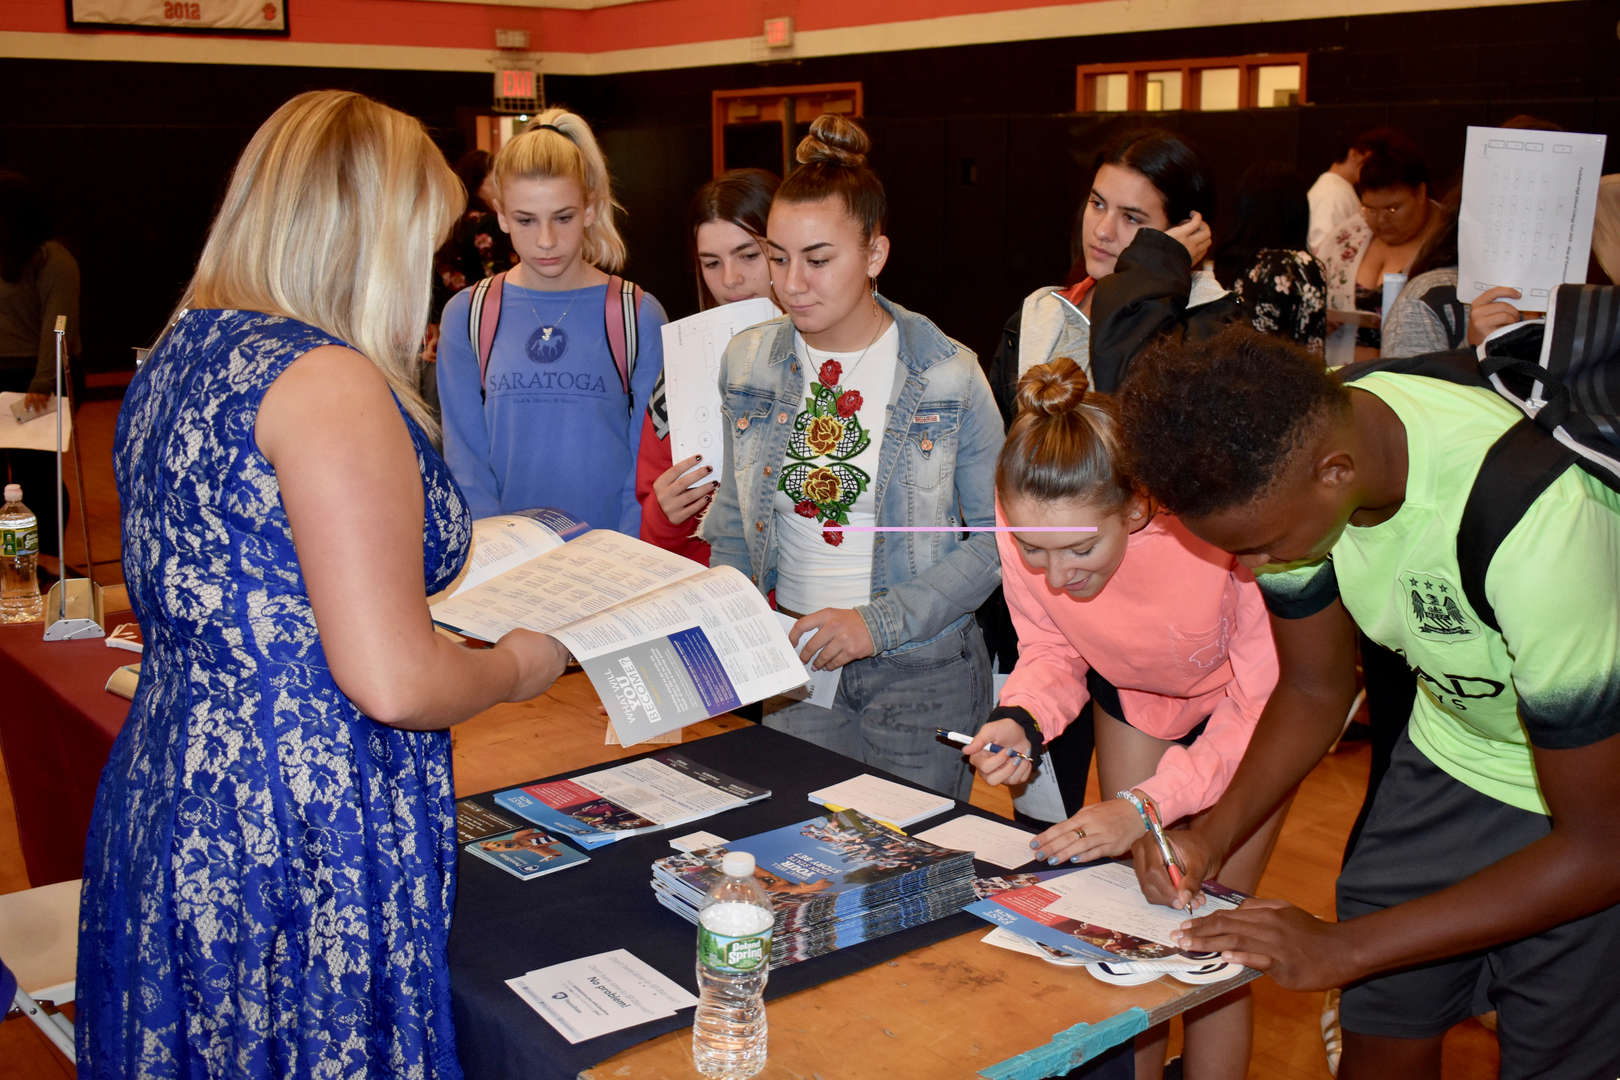 Tuckahoe High School students at the College Fair